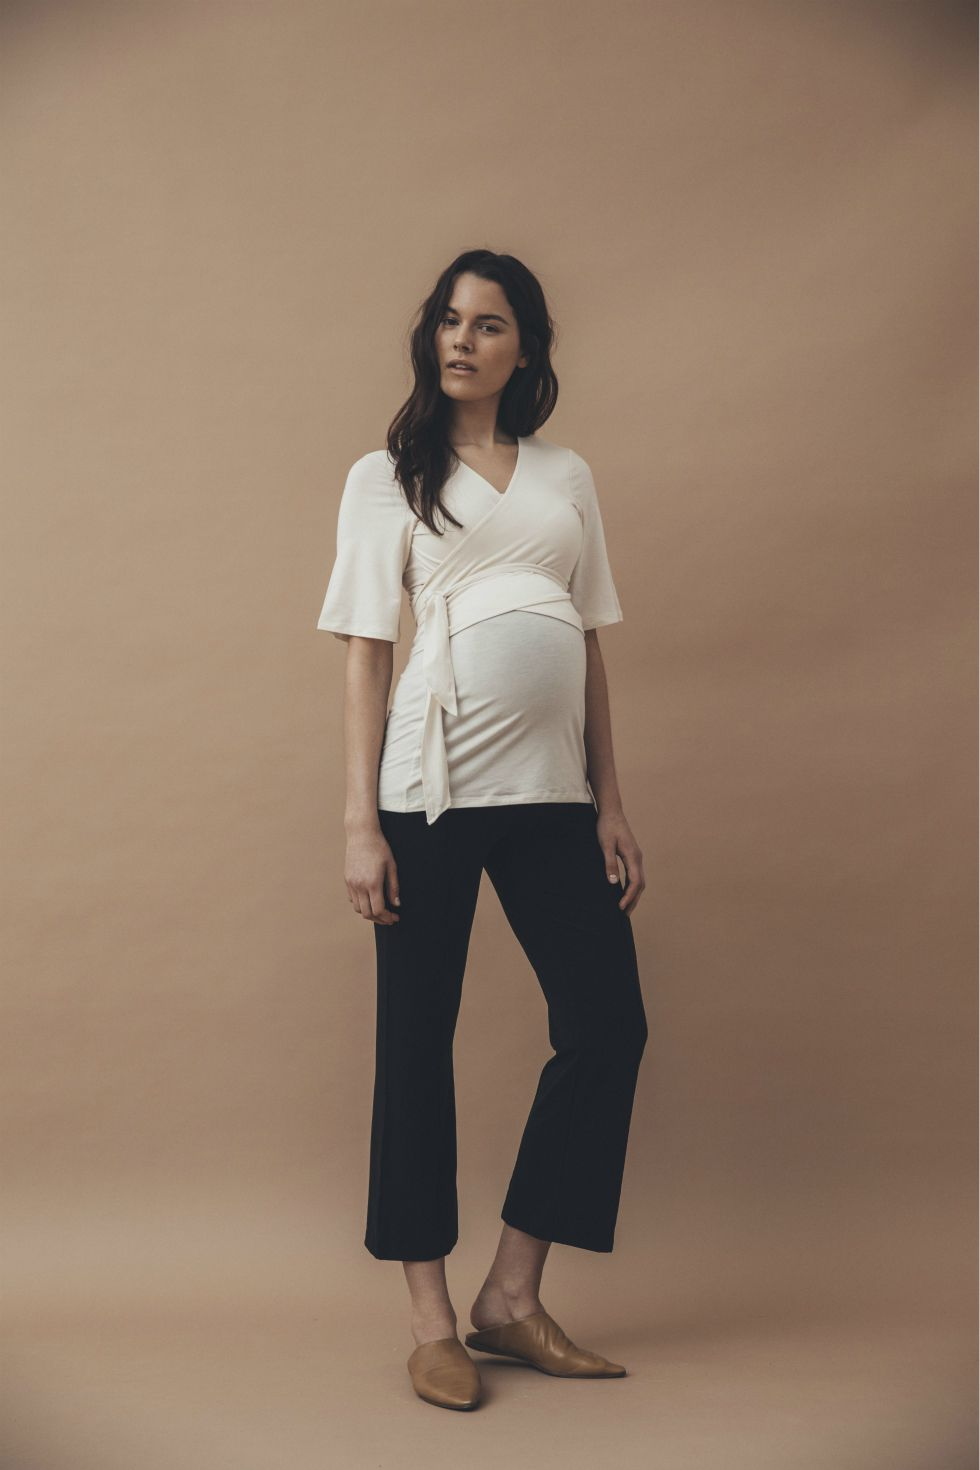 Elle's former employee Emma Elwin has a new design collaboration. Now she is launching a collection together with the Swedish mother brand Boob.  #emmaelwinxboob #boobdesign #sustainablefashion #elle #maternityfashion #maternitystyle #nursingwear